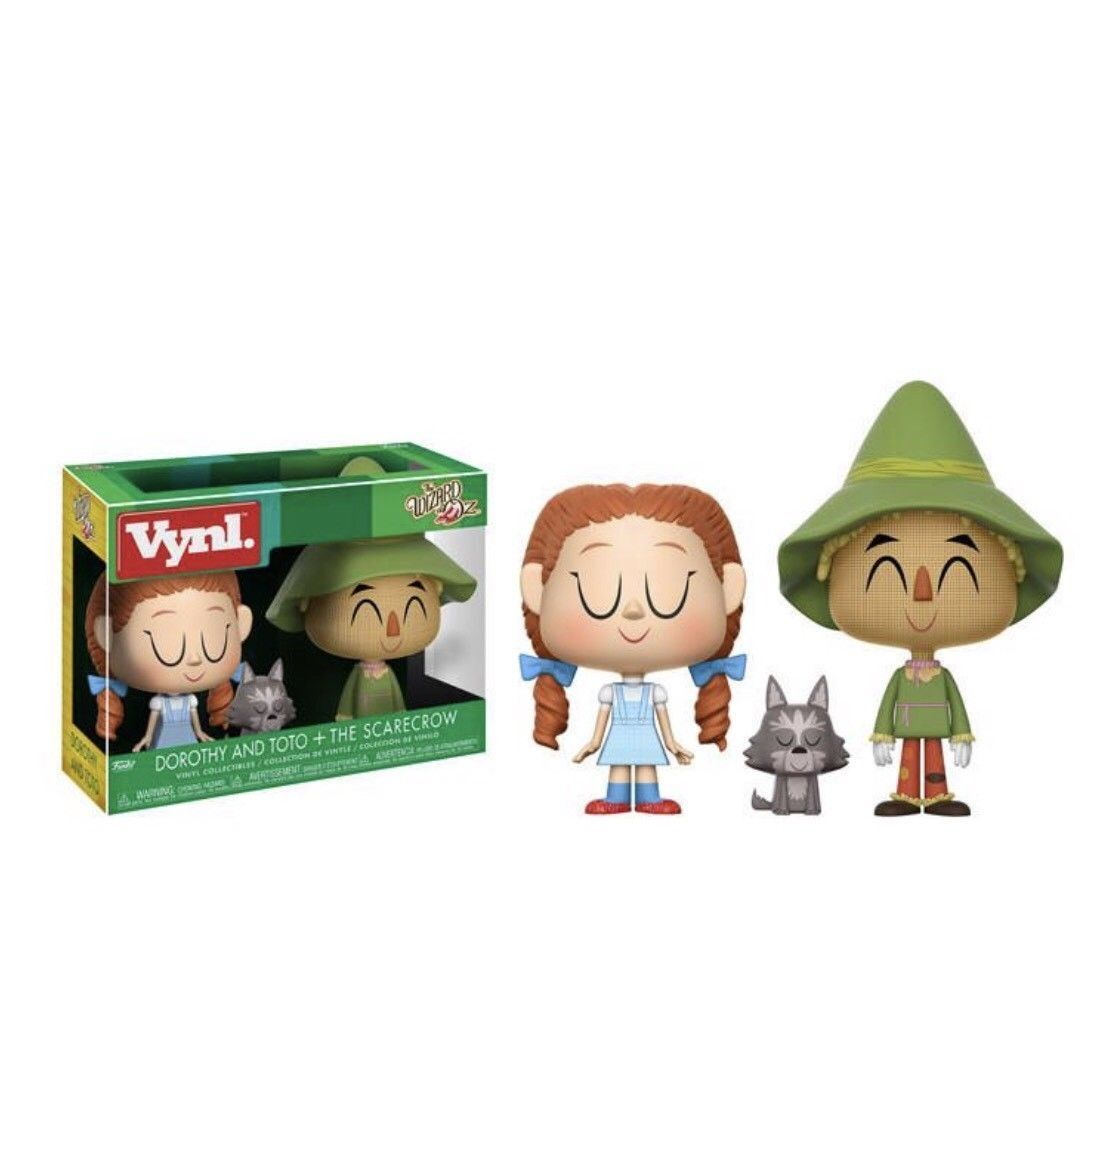 The Wizard of Oz DGoldthy ToTo & Scarecrow 3-Pack Pack Vinyl 3.75   Figur FUNKO